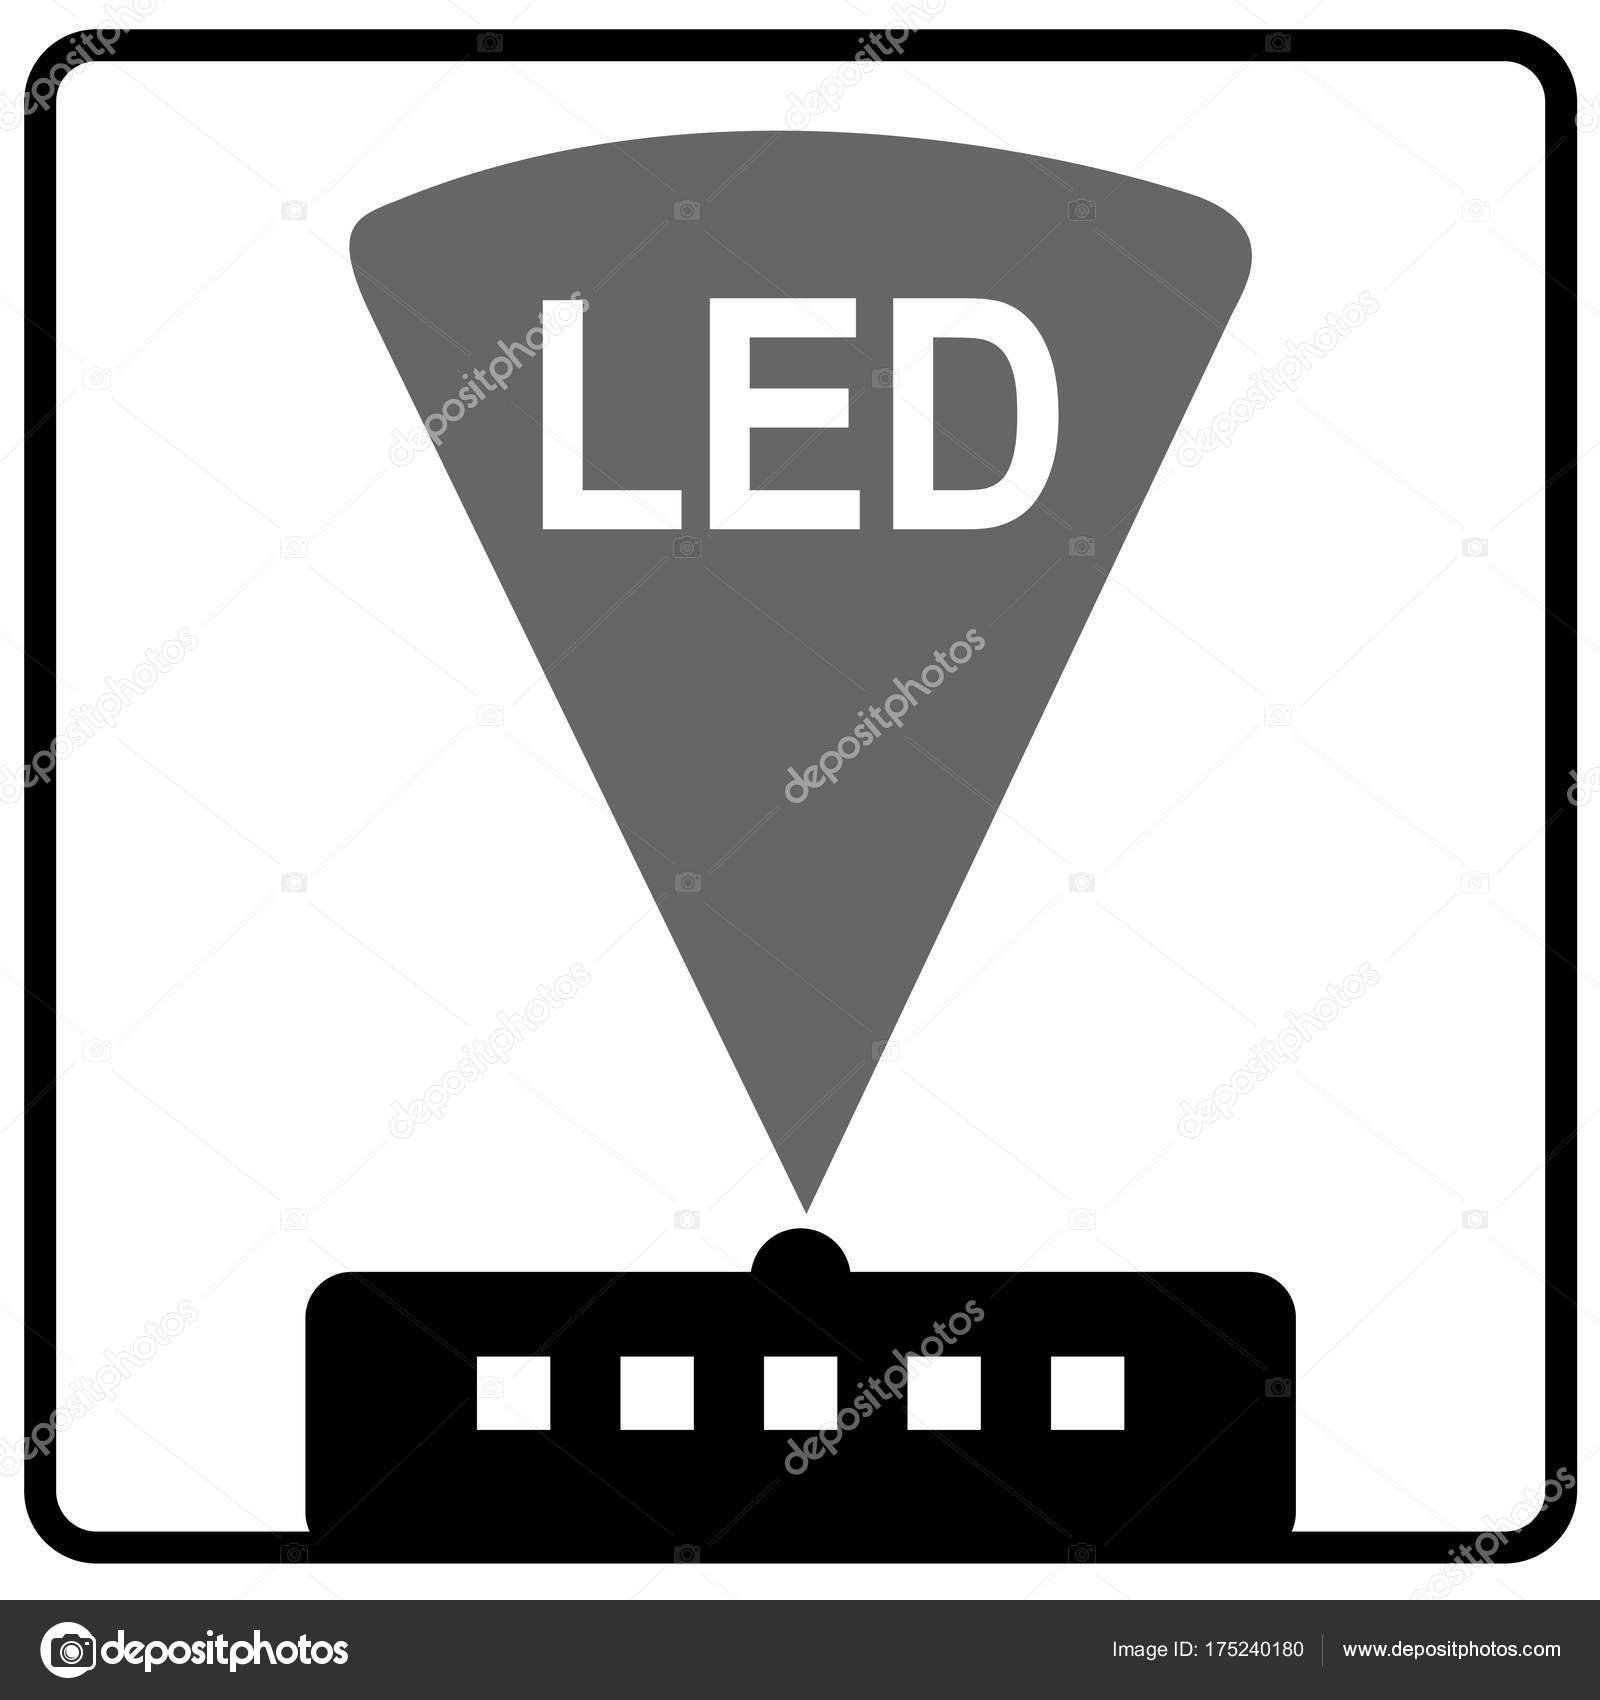 symbol of light emitting diode images meaning of text